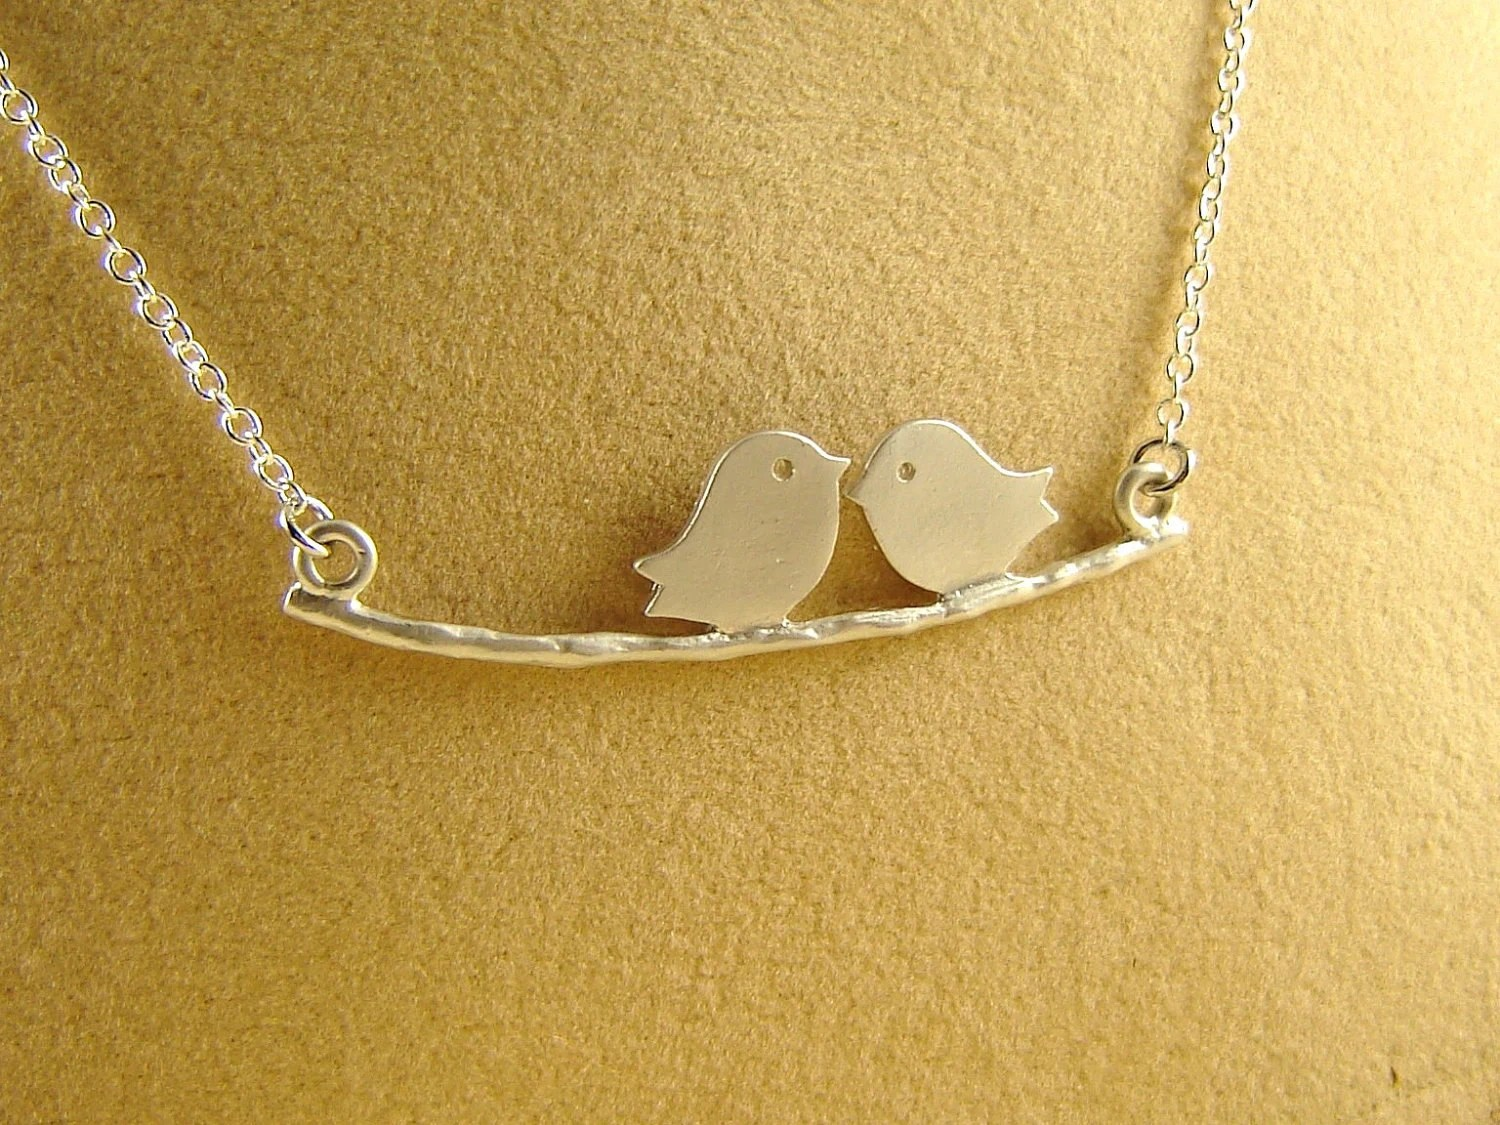 Love Birds on Branch Necklace - Sterling Silver Chain